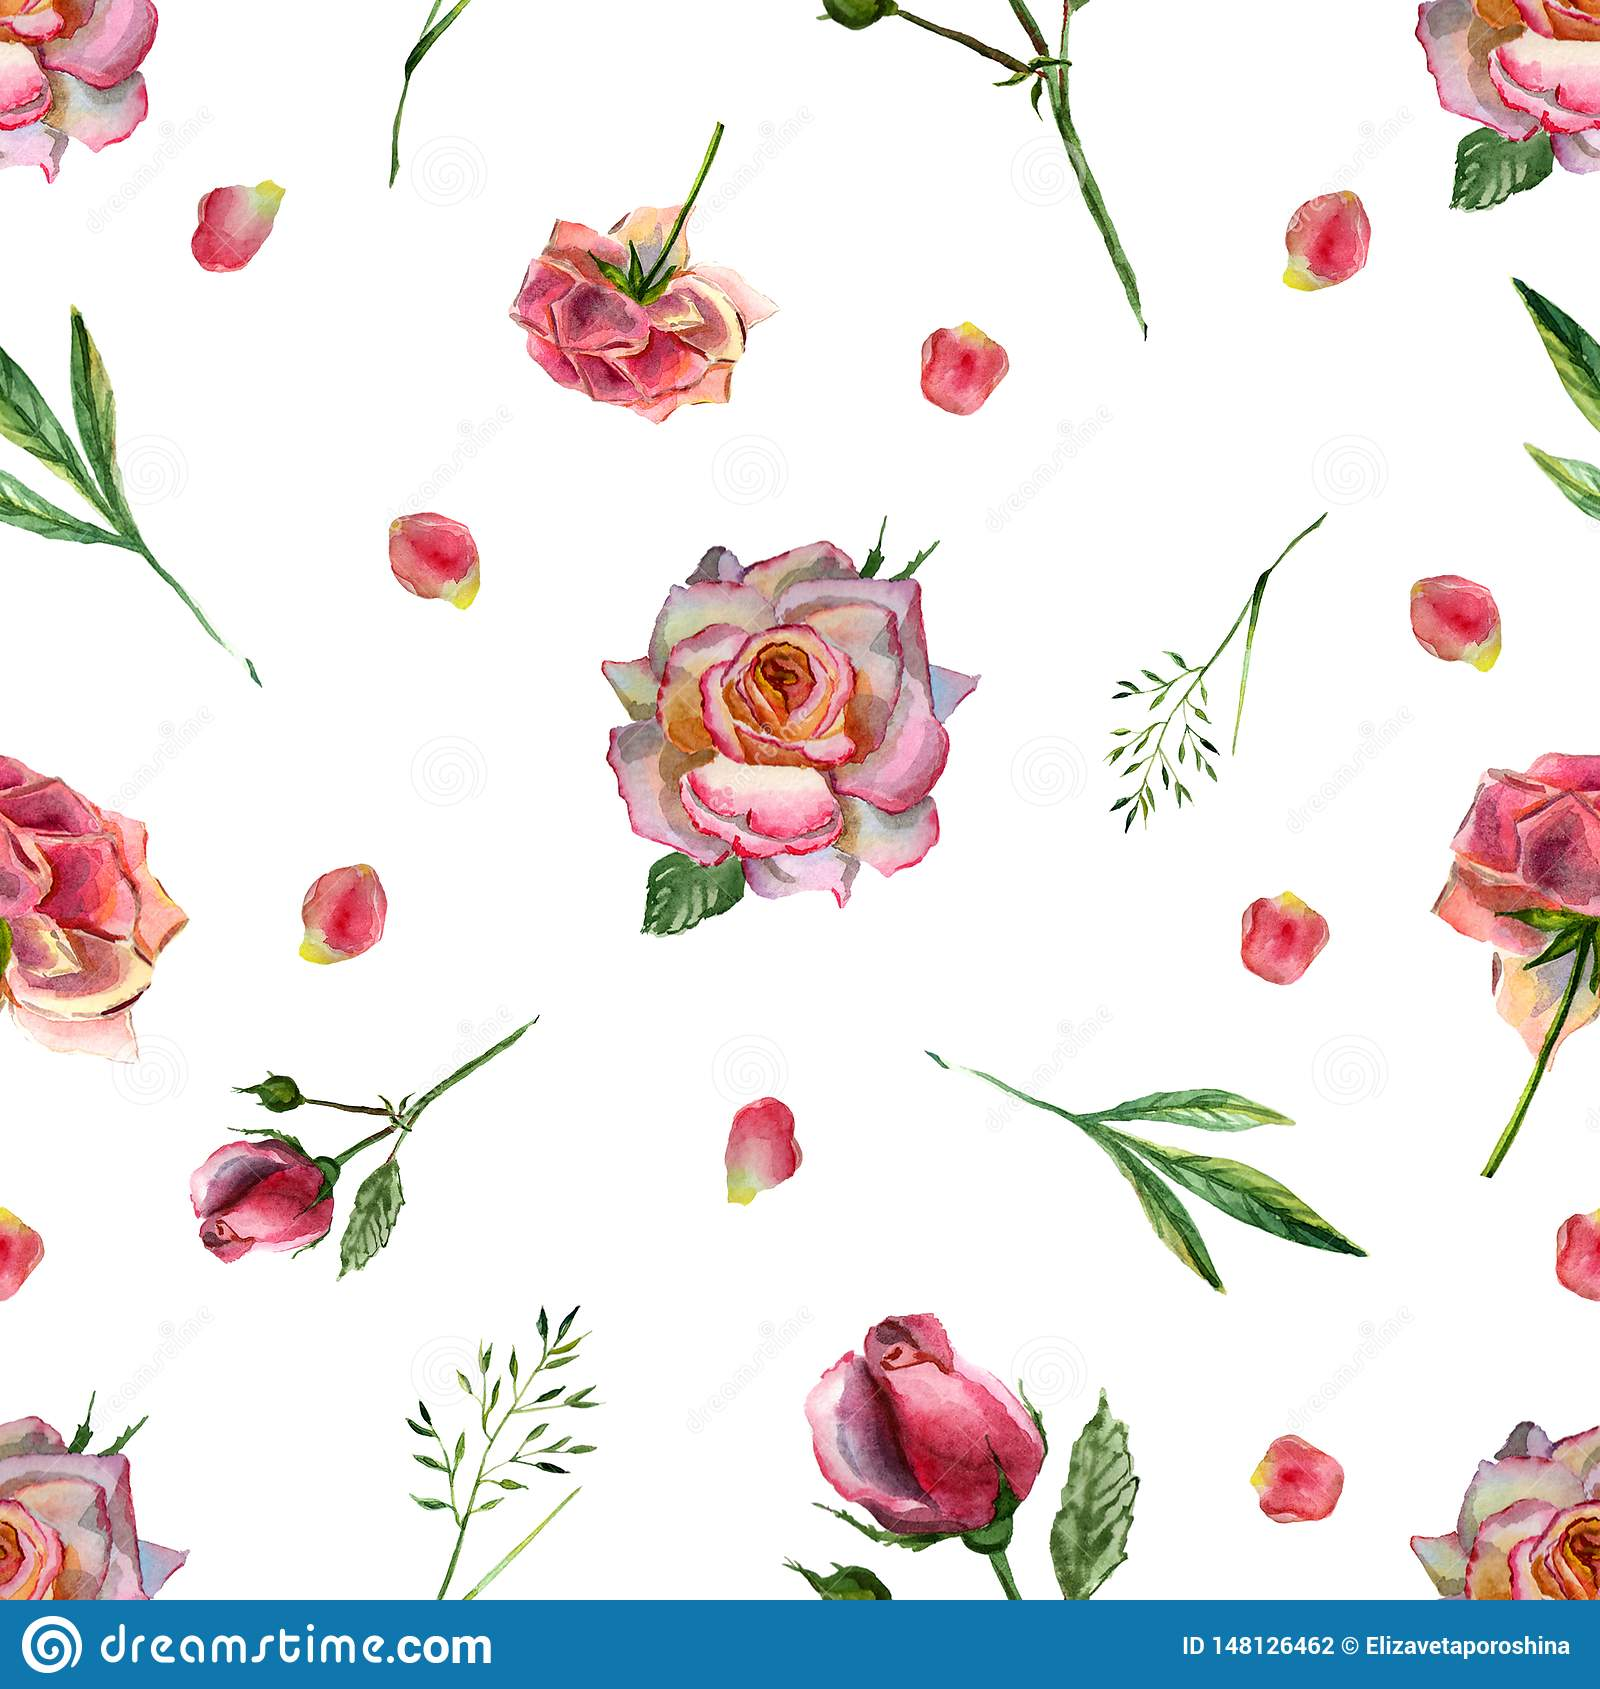 Watercolor seamless pattern with flowers and pink petals